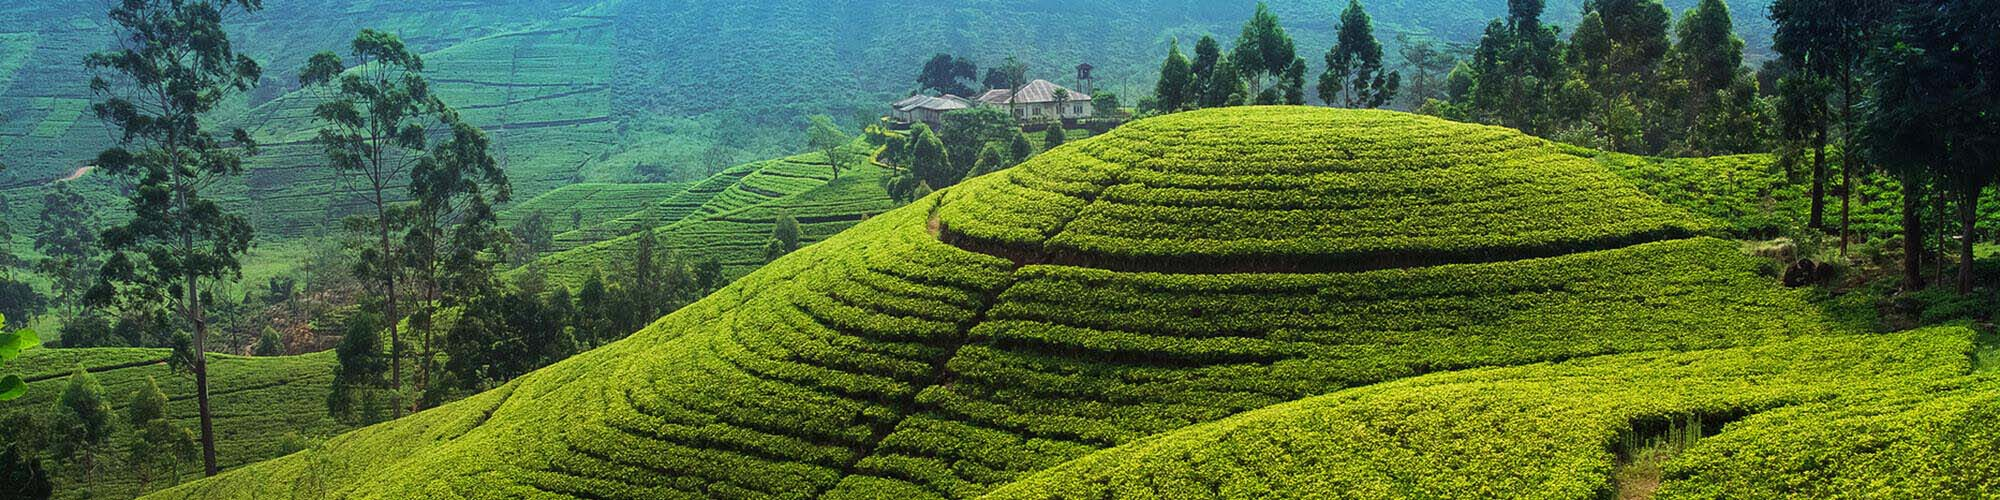 Tea plantations landscape, Sri Lanka